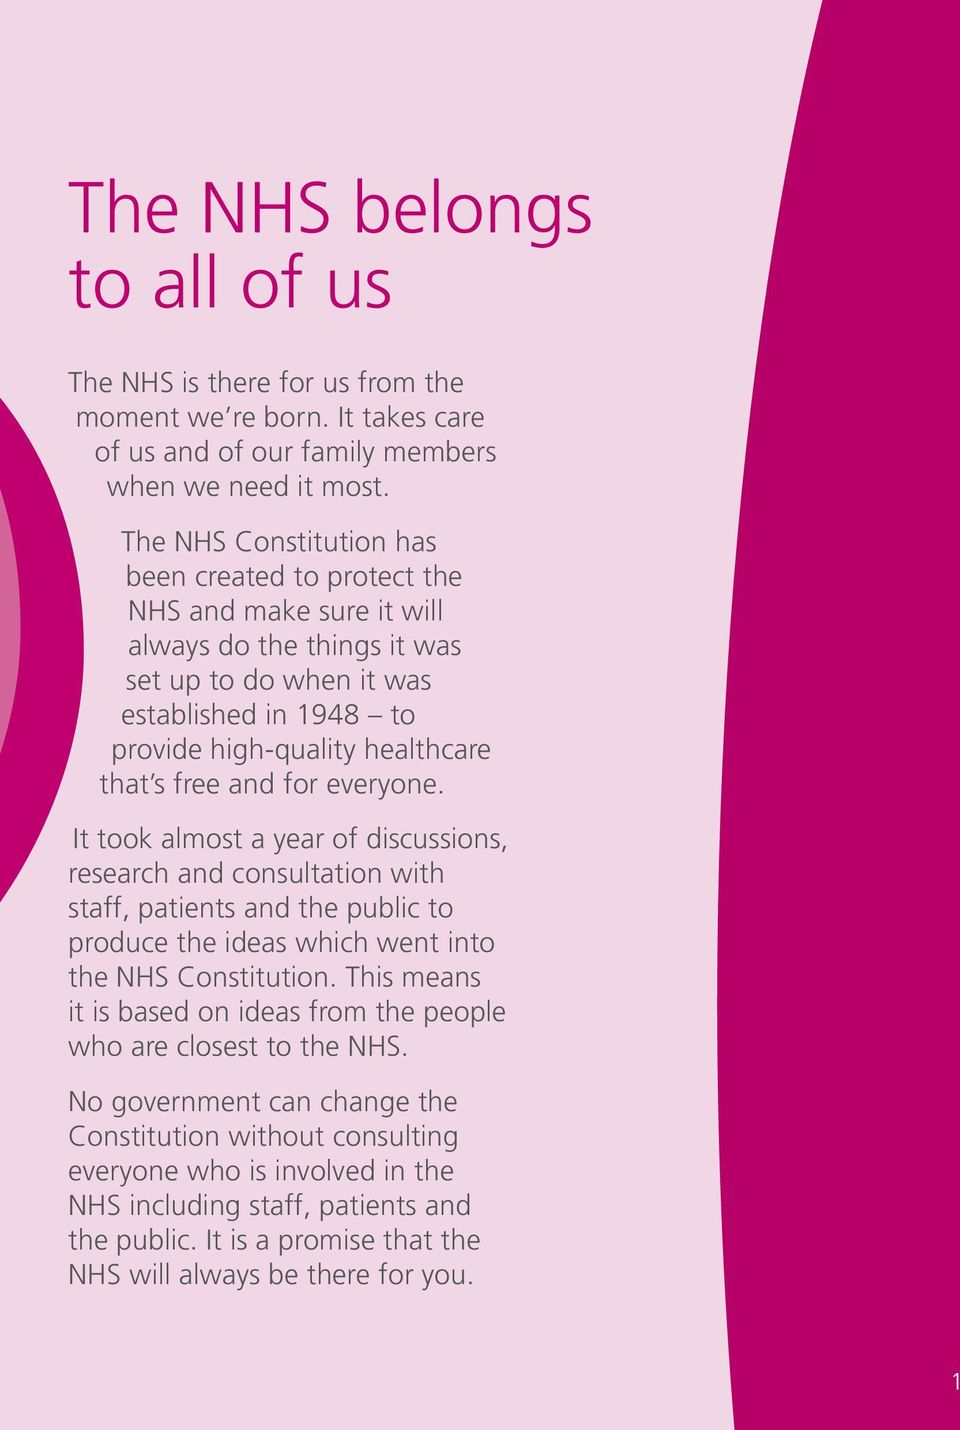 and for everyone. It took almost a year of discussions, research and consultation with staff, patients and the public to produce the ideas which went into the NHS Constitution.